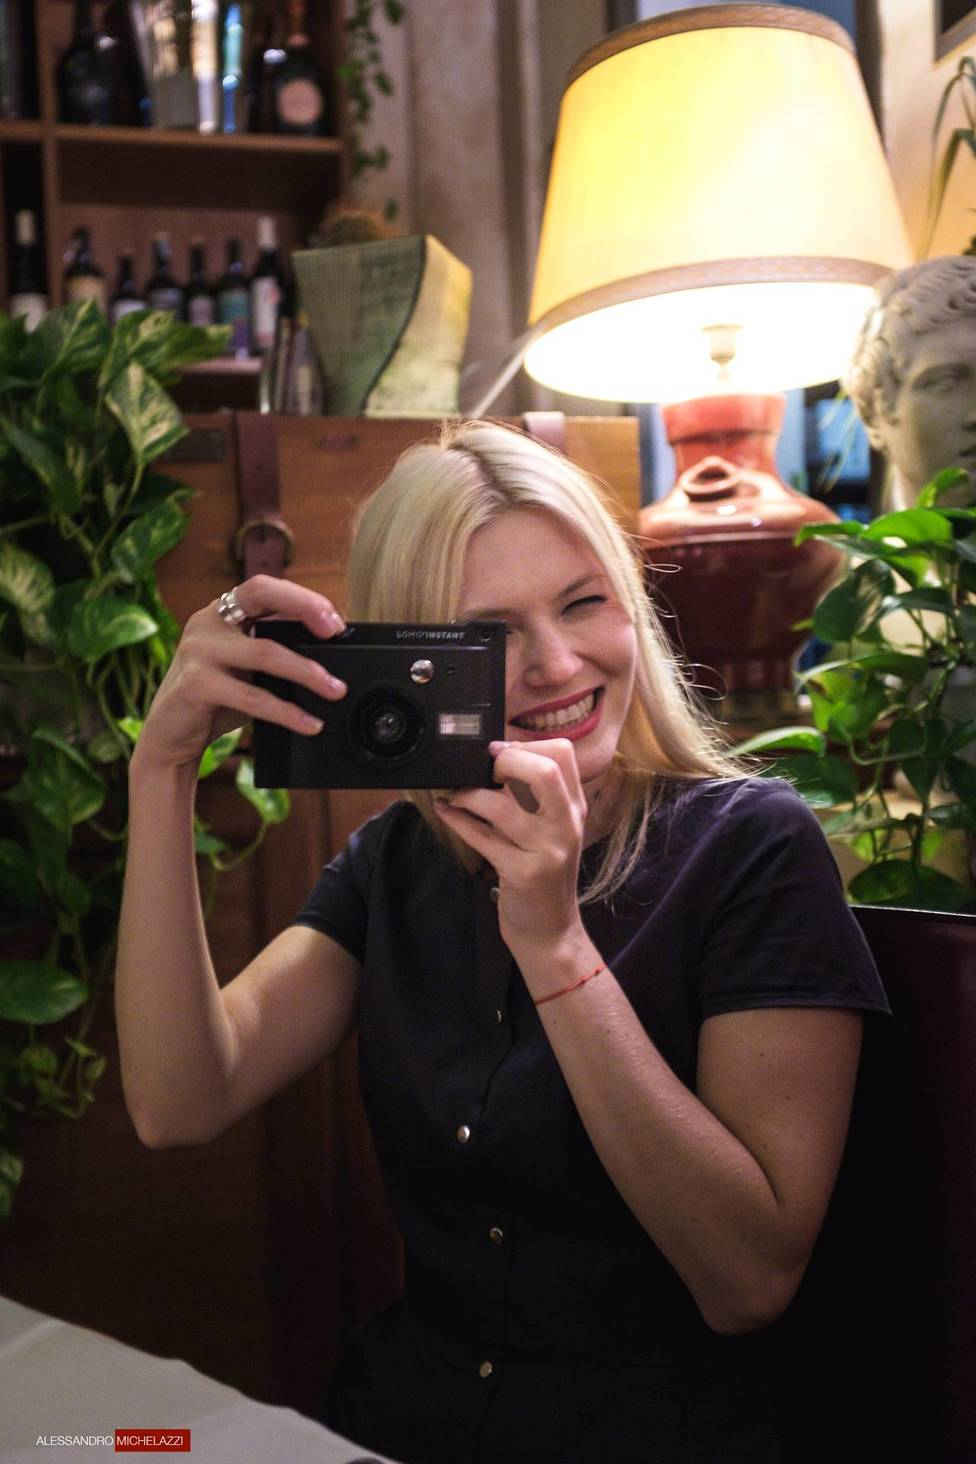 Olya and her new Lomo insta camera!